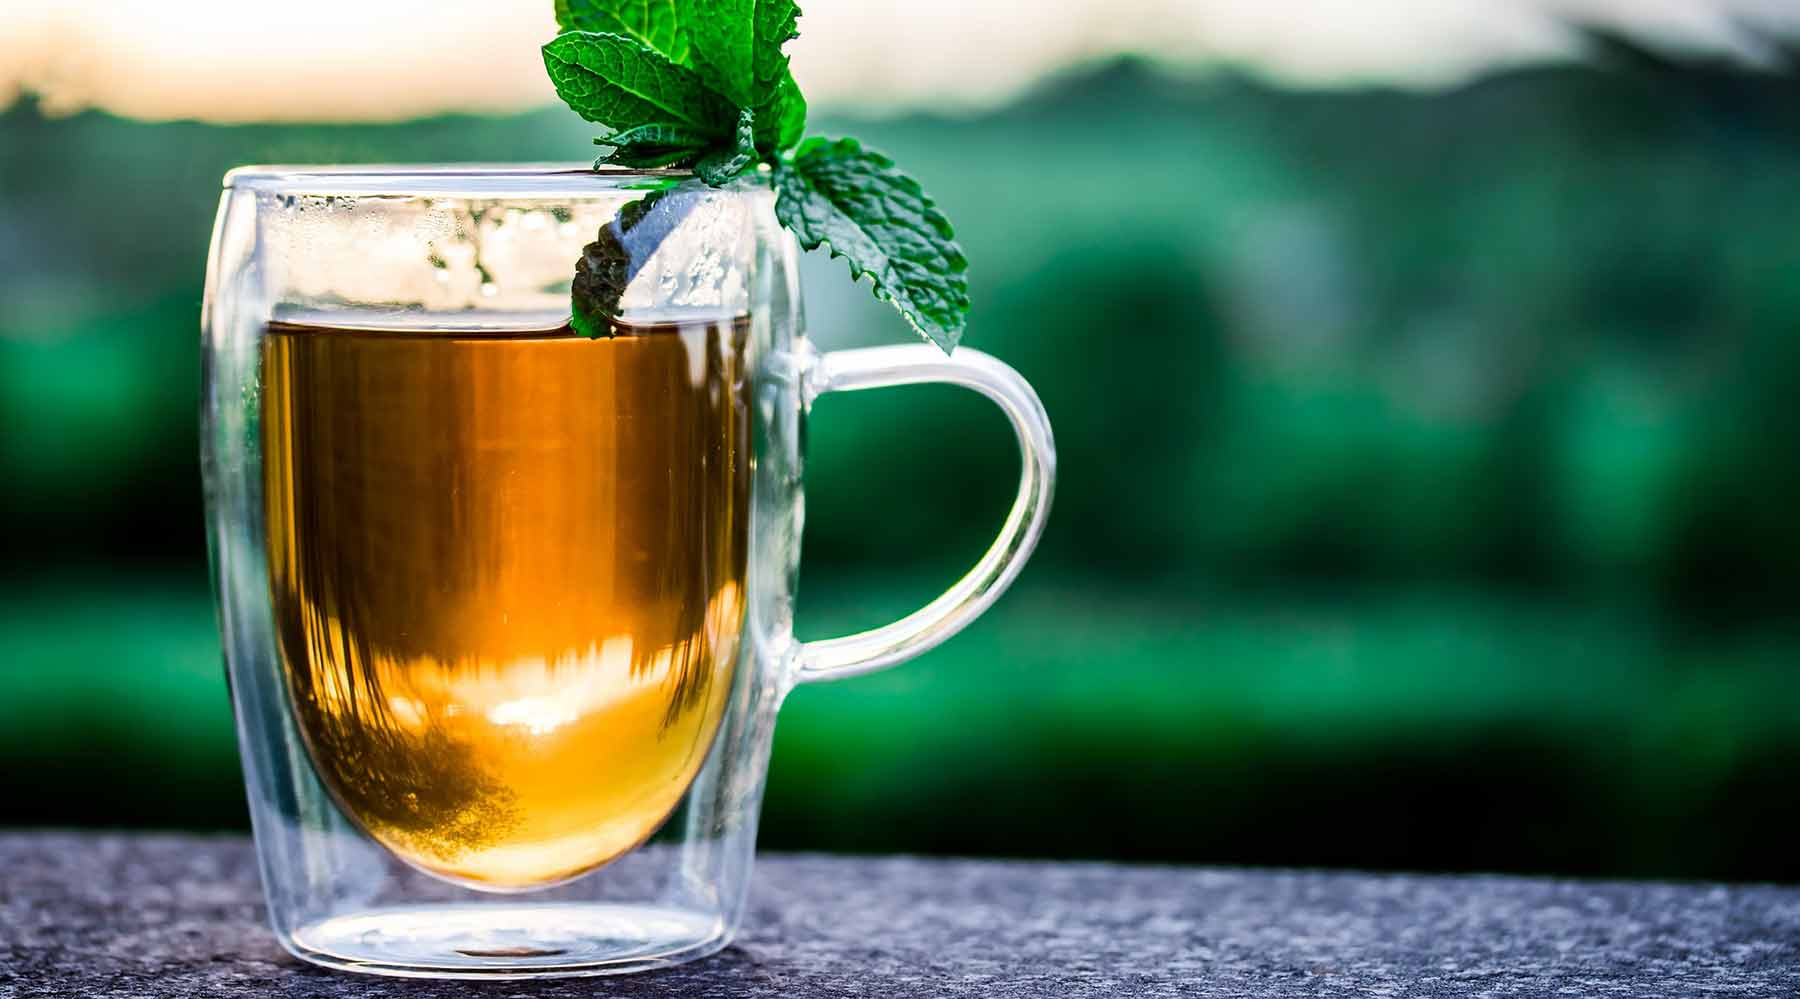 A delicious cup of peppermint herbal tea